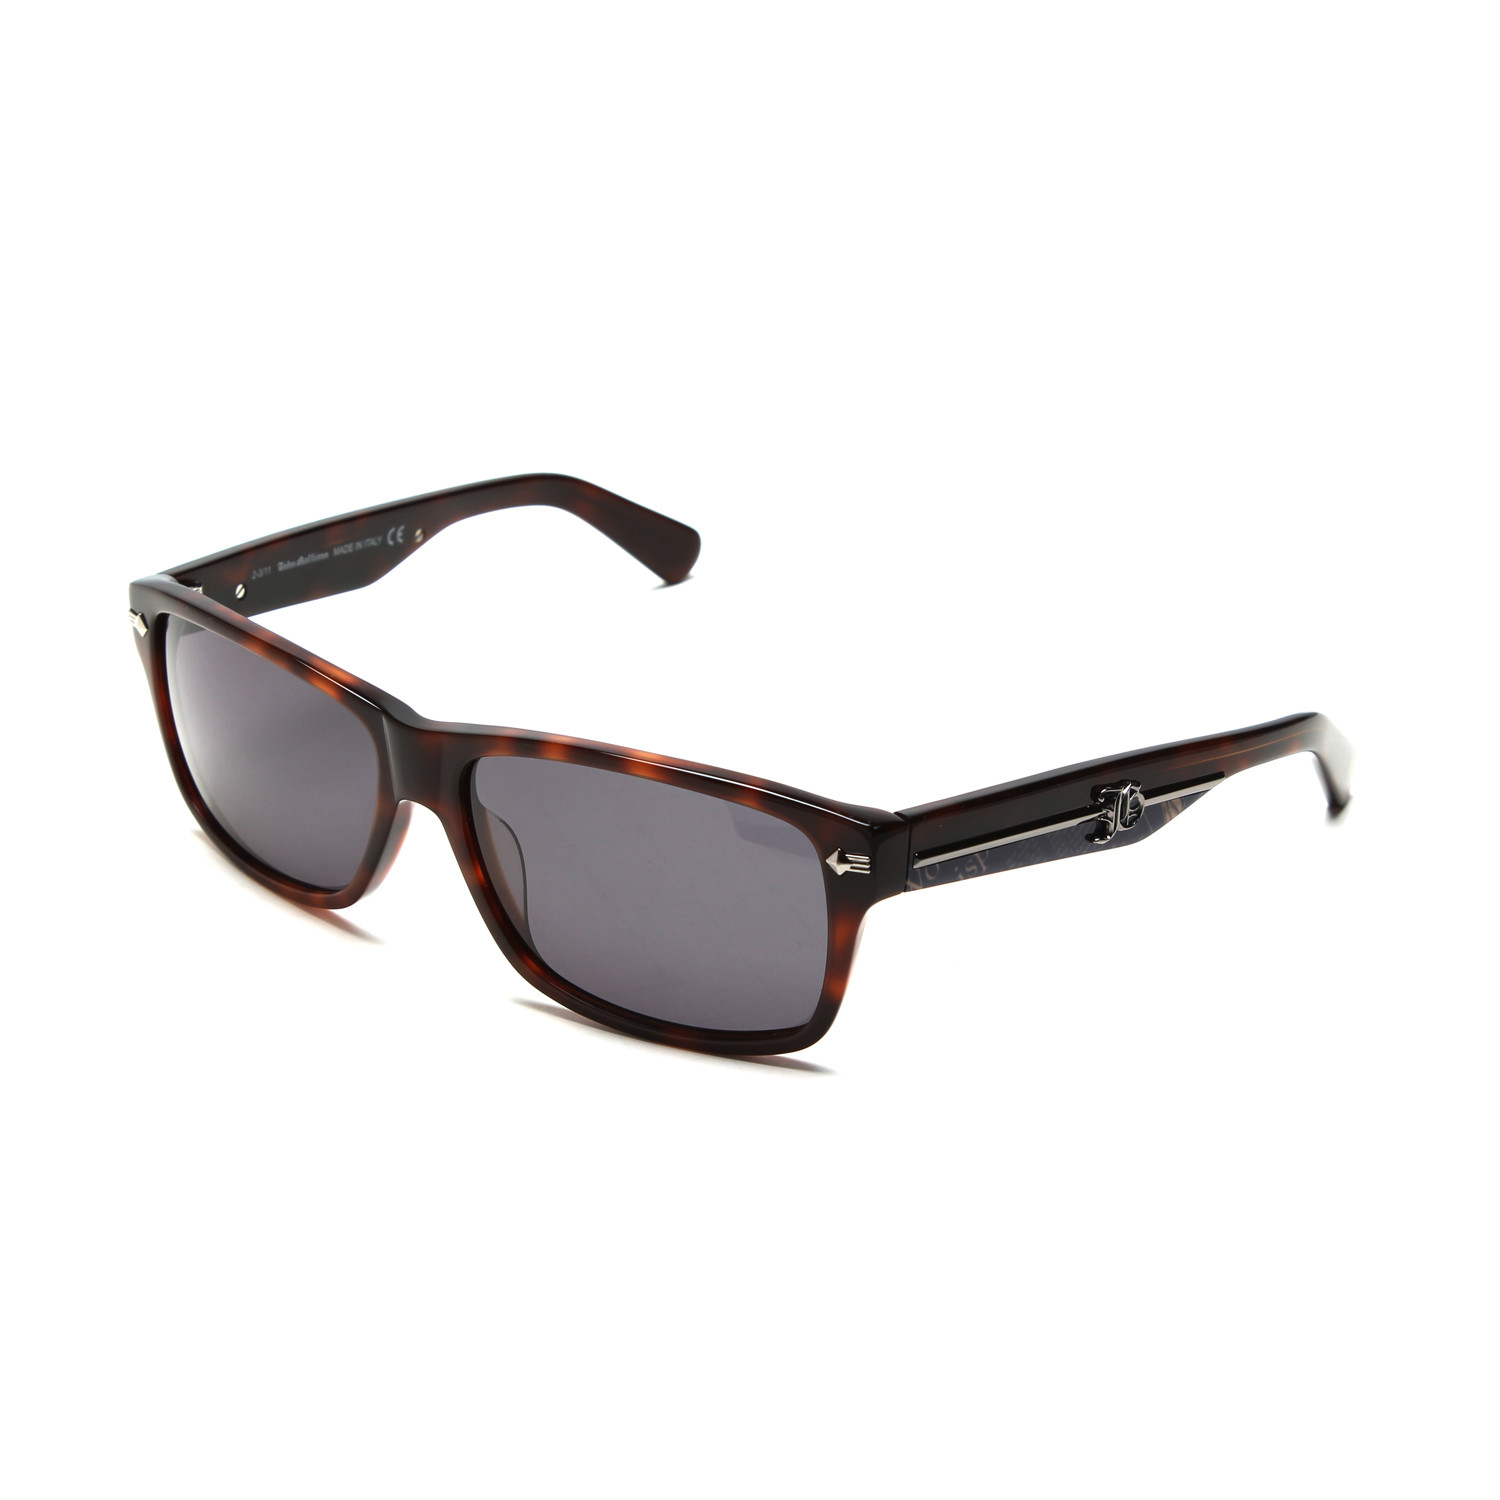 6448ceb5468 Details about John Galliano Dark Havana Sunglasses JG0046 52A Smoke Lens  Made in Italy